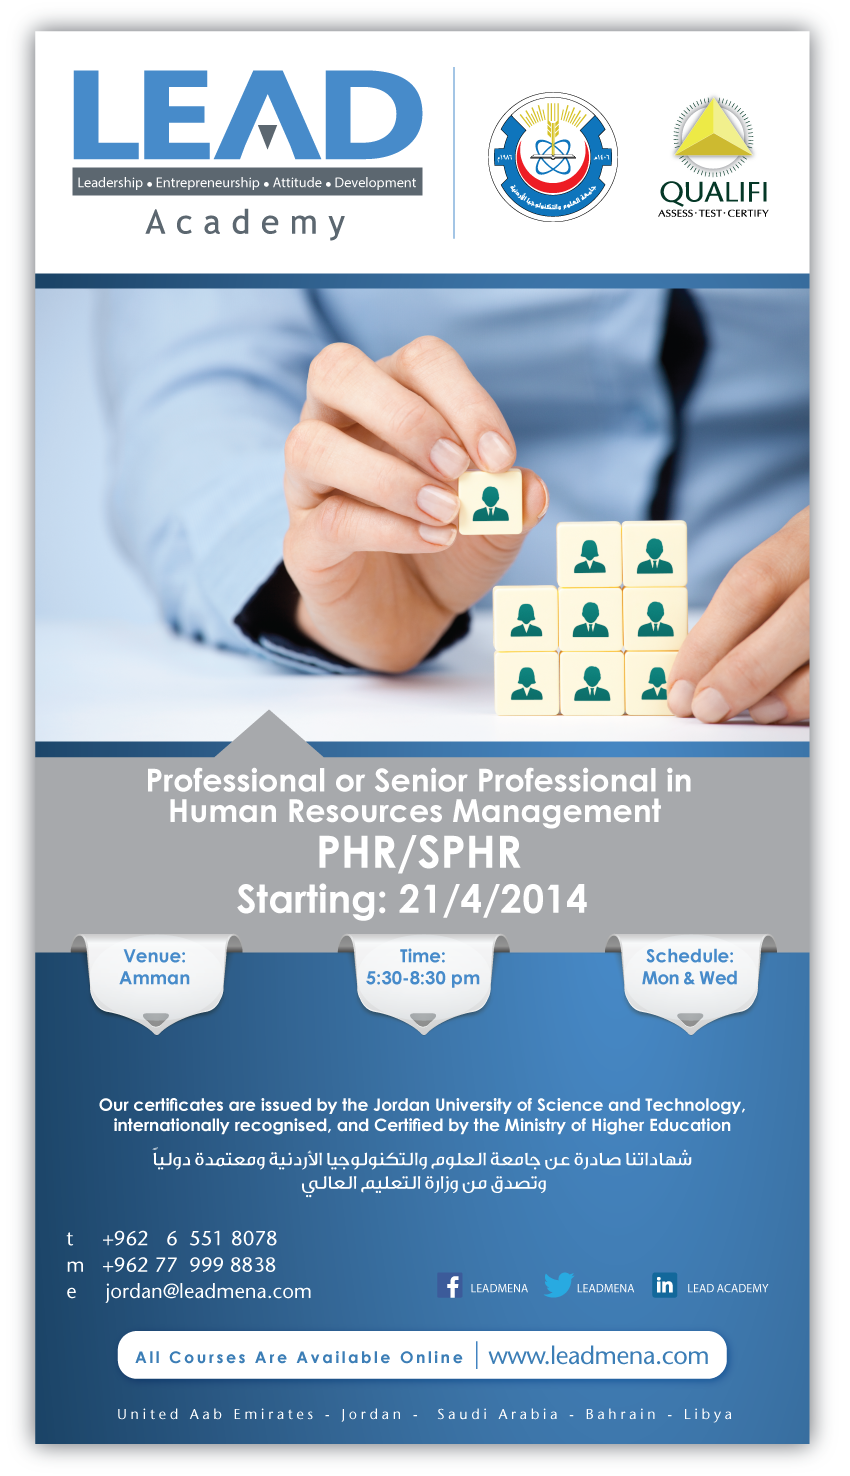 Professional or senior professional in human resources phrsphr on professional or senior professional in human resources phrsphr on 21st april amman xflitez Image collections